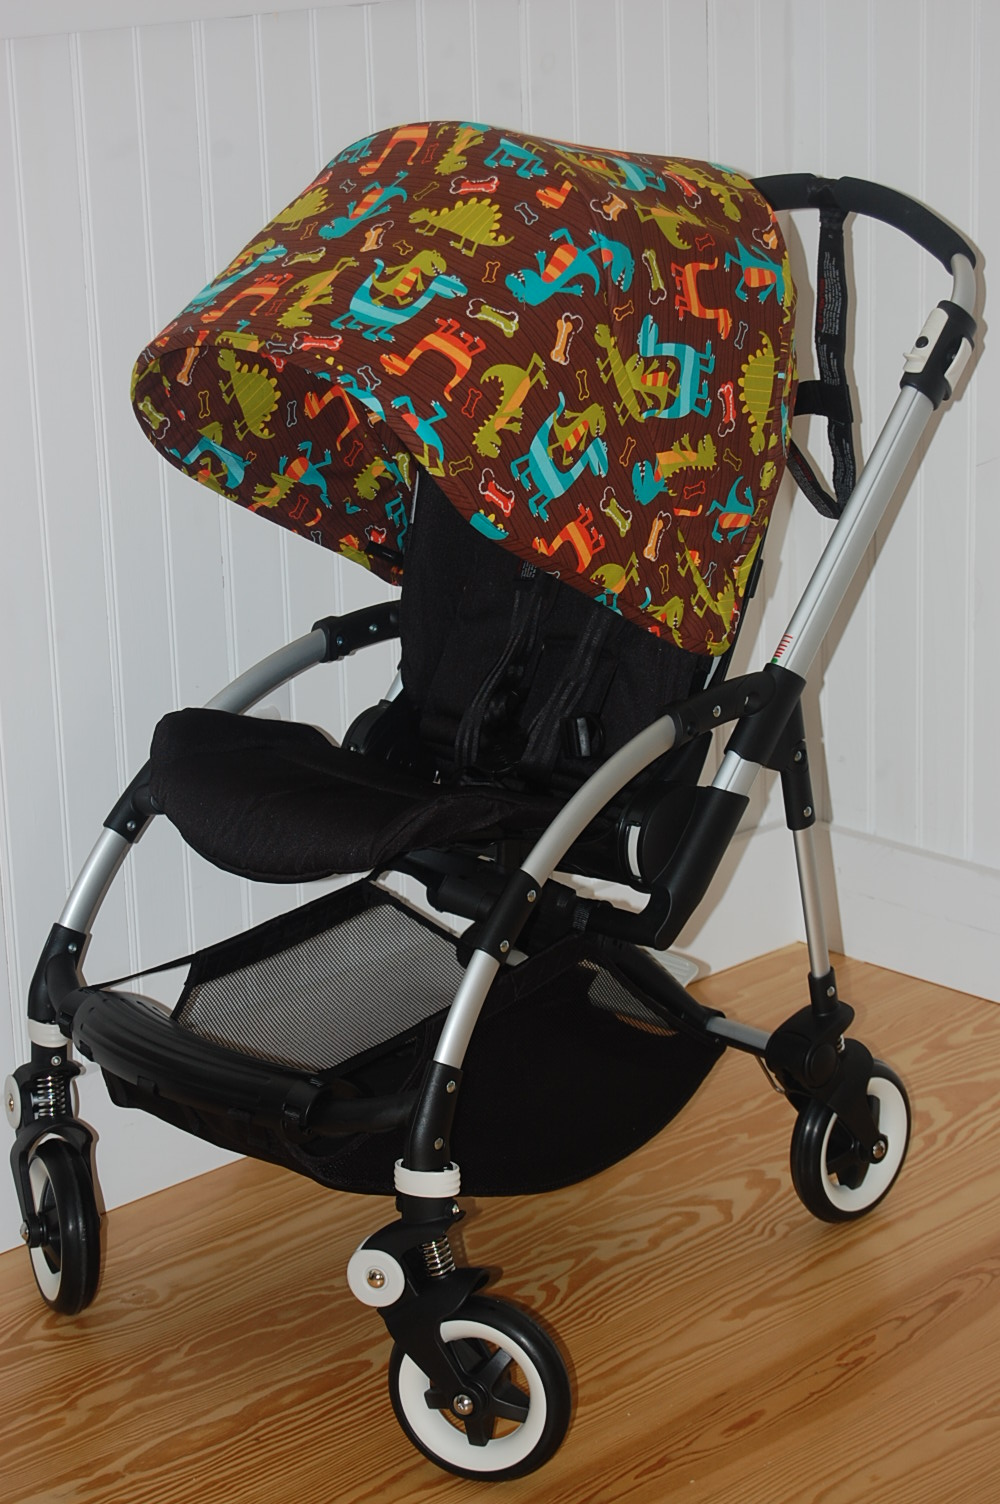 maine baby treats custom bugaboo stroller covers. Black Bedroom Furniture Sets. Home Design Ideas